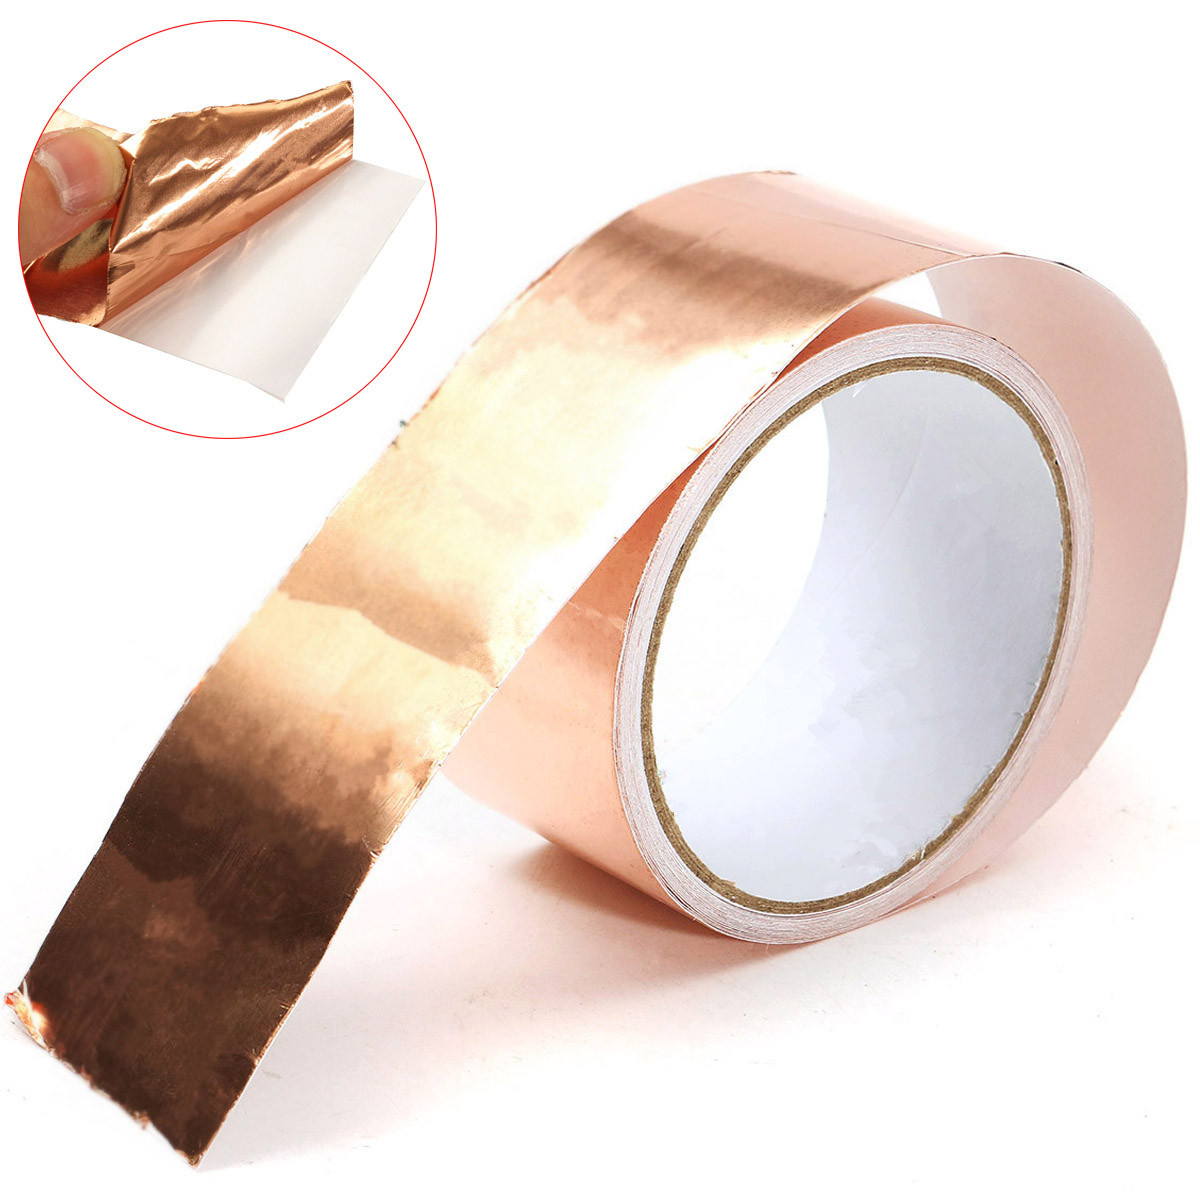 50mm X5m Pure Cooper Foil Tape EMI Single Side Conductive Foil Tape Strip Adhesive EMI Shielding Heat Resist Tape